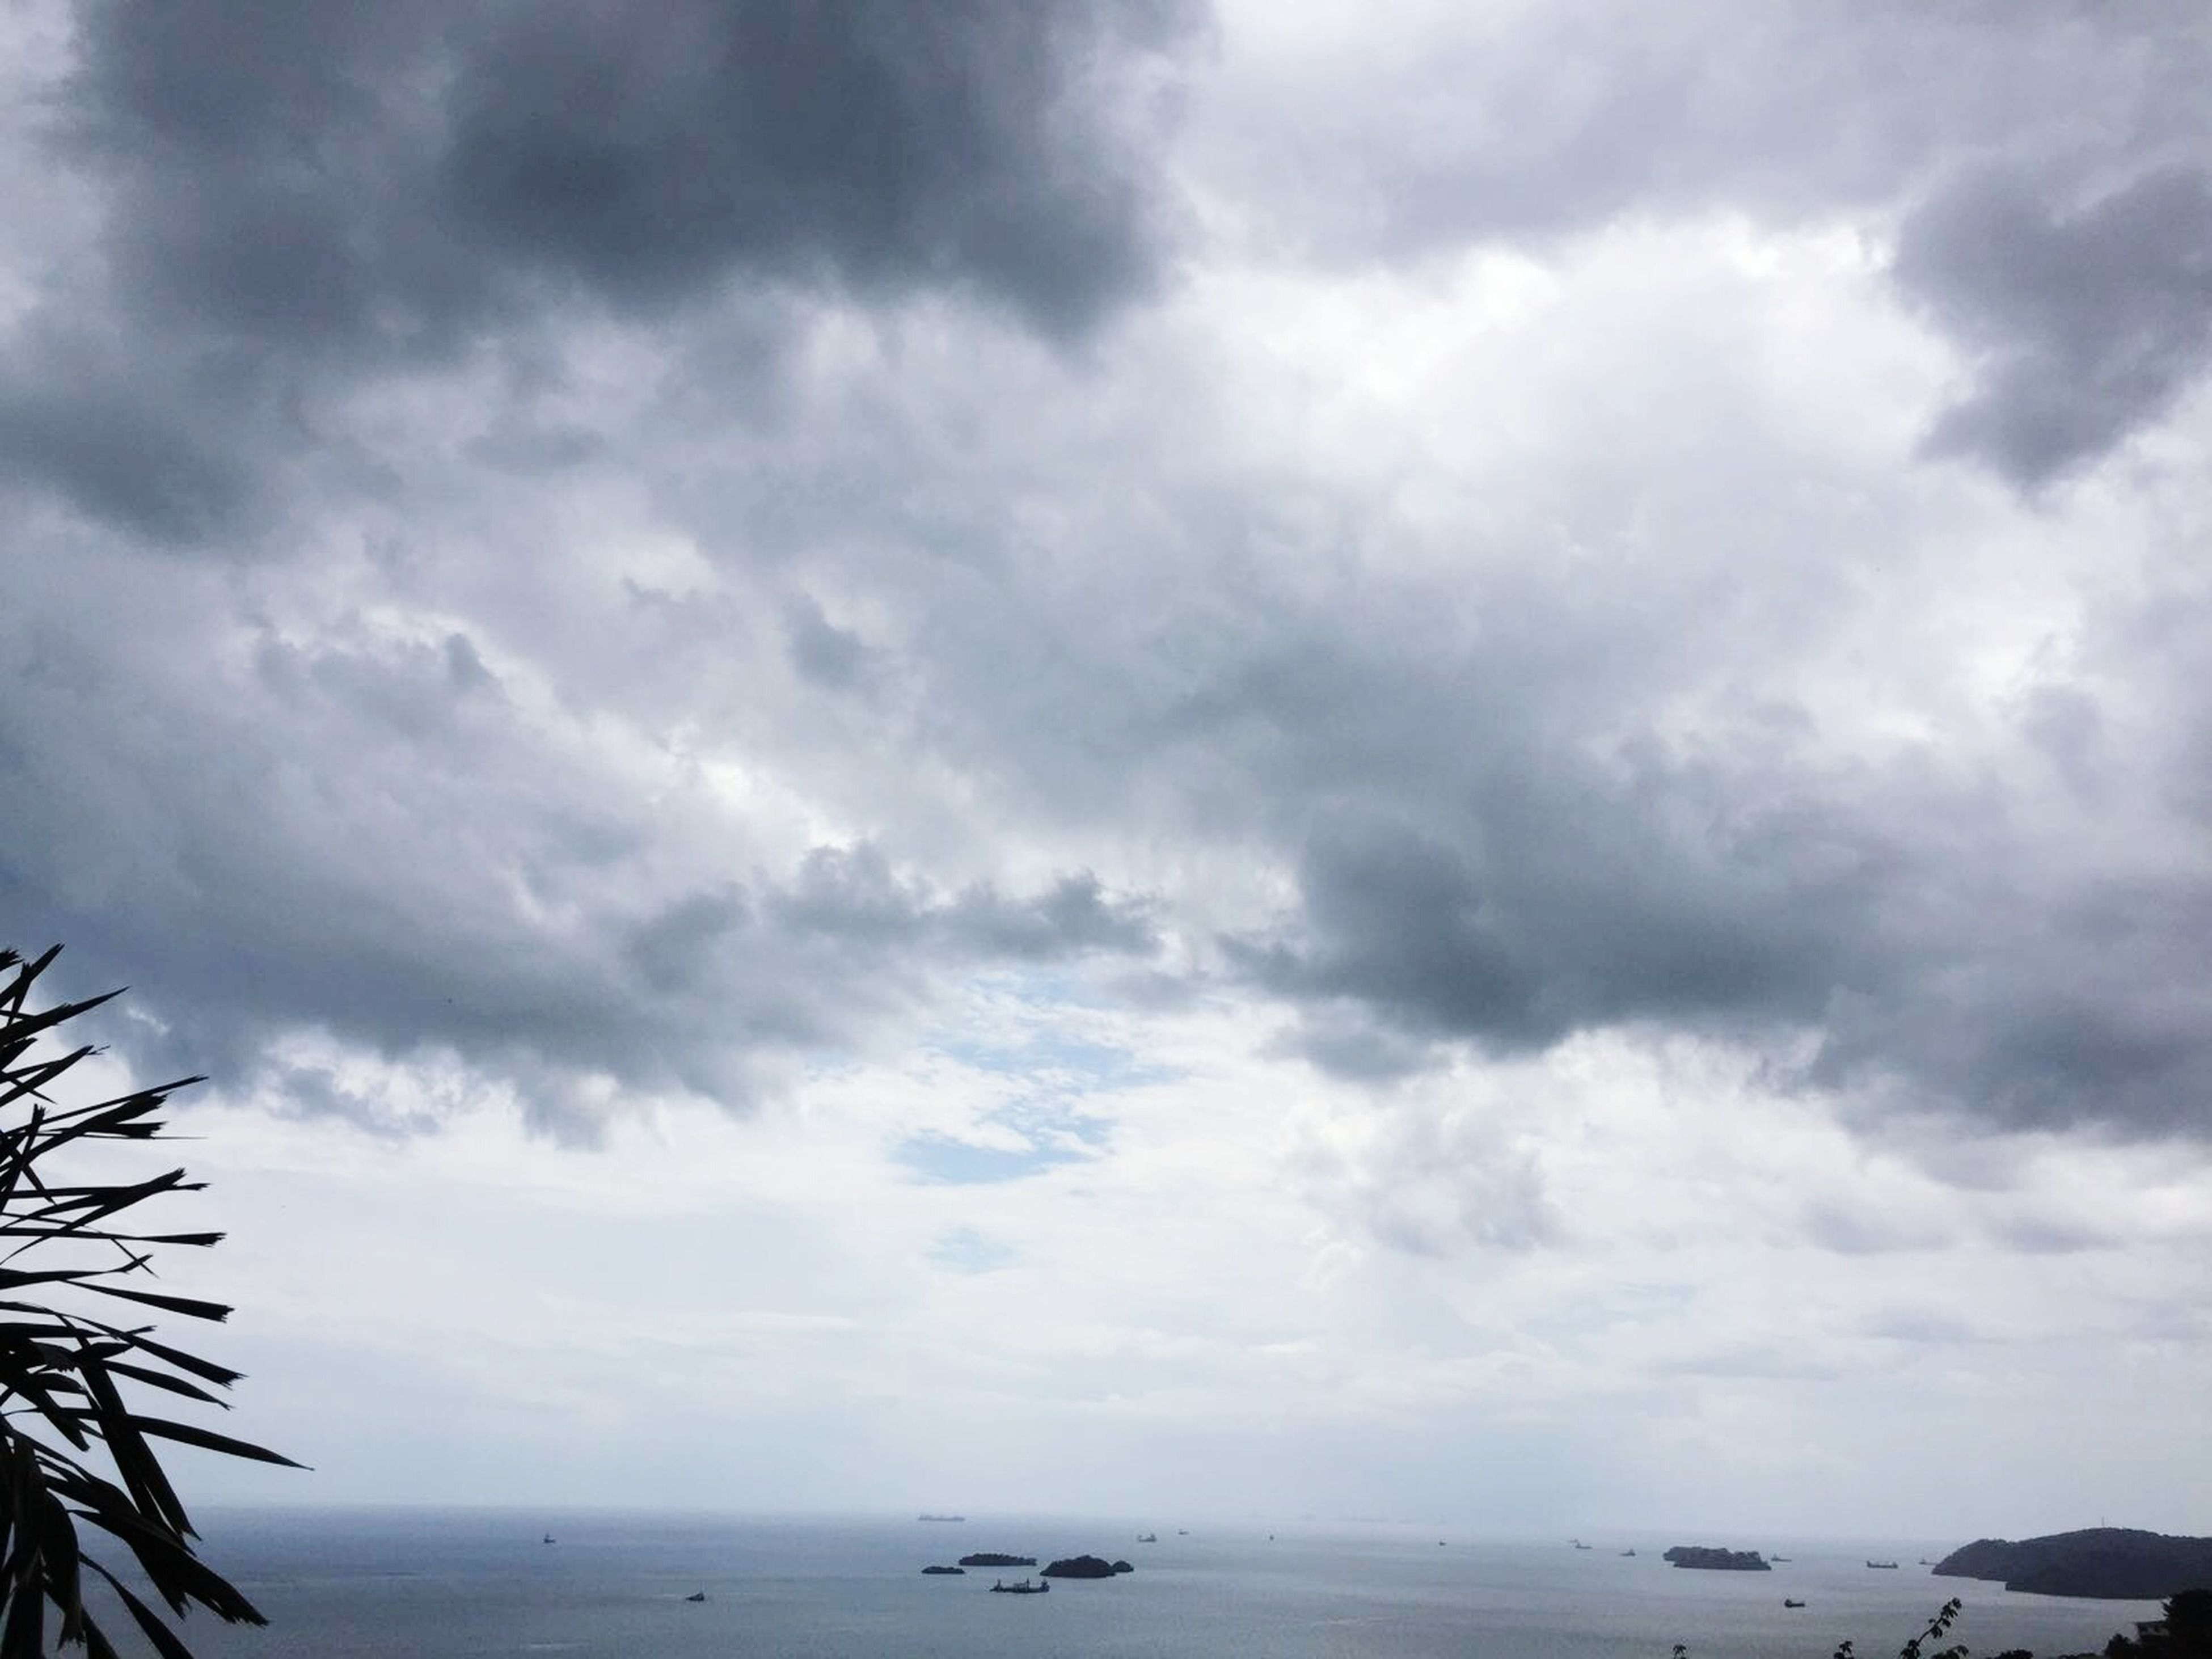 sky, cloud - sky, nature, sea, tranquility, scenics, outdoors, beauty in nature, no people, tranquil scene, water, day, storm cloud